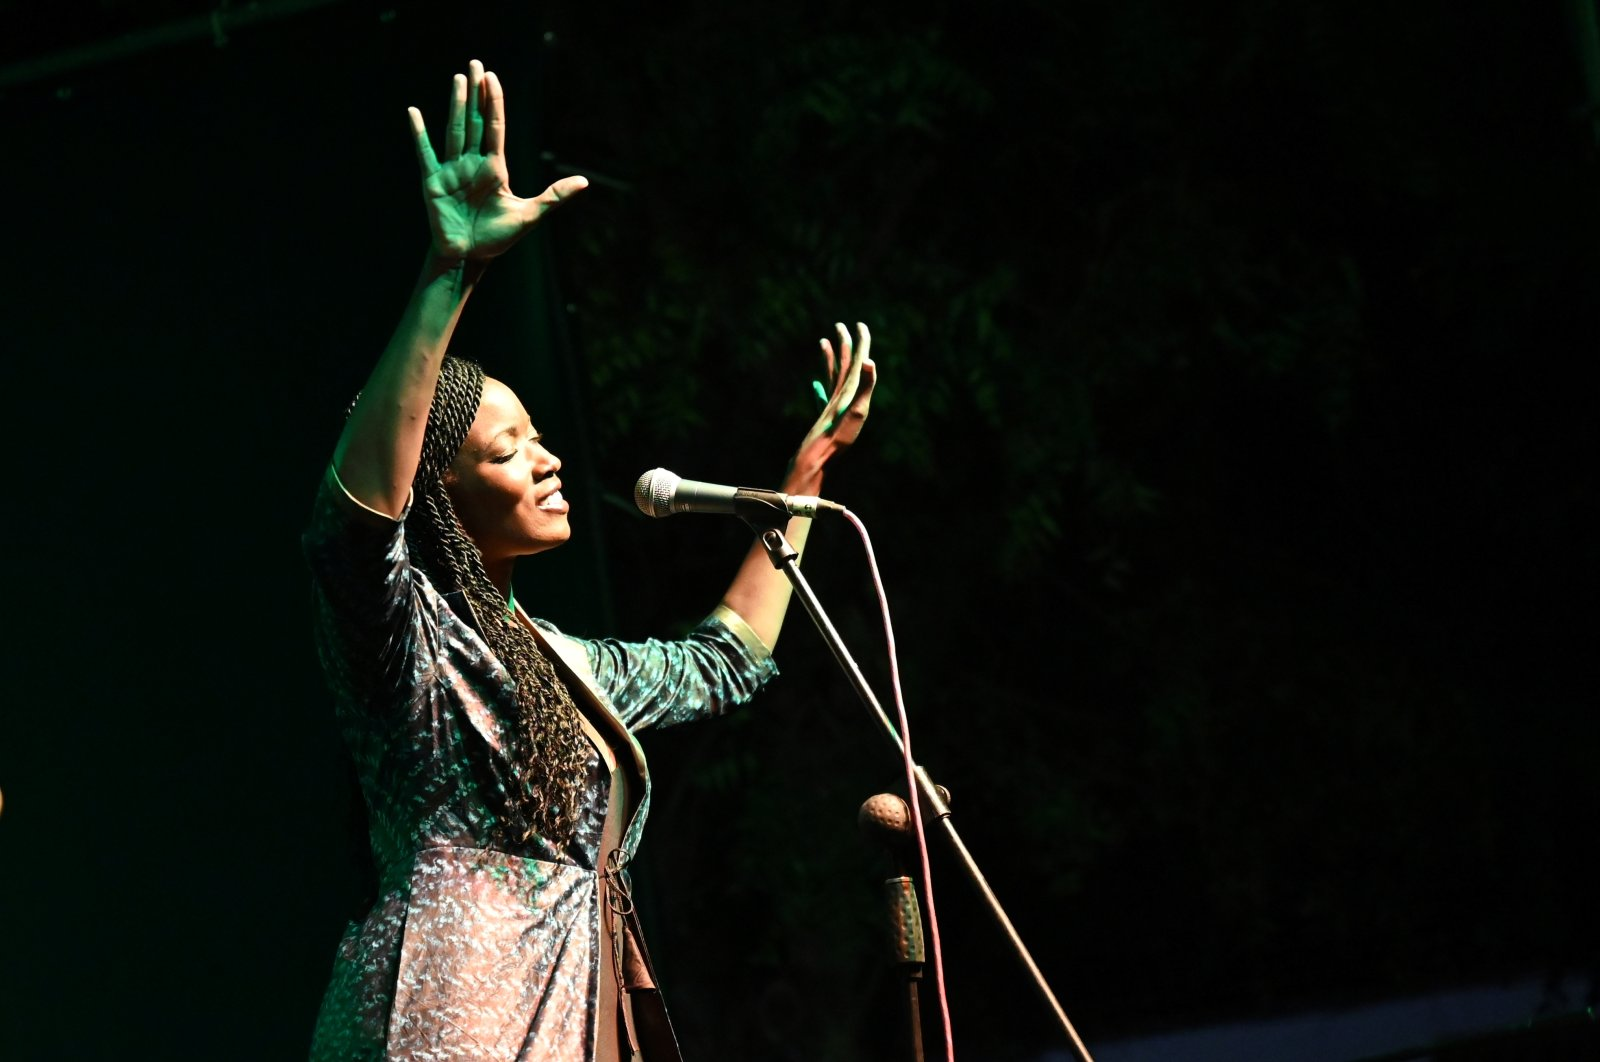 Singer Awa Ly performs on stage at the Saint Louis Jazz Festival in Saint Louis, Senegal, June 18, 2021. (Reuters Photo)